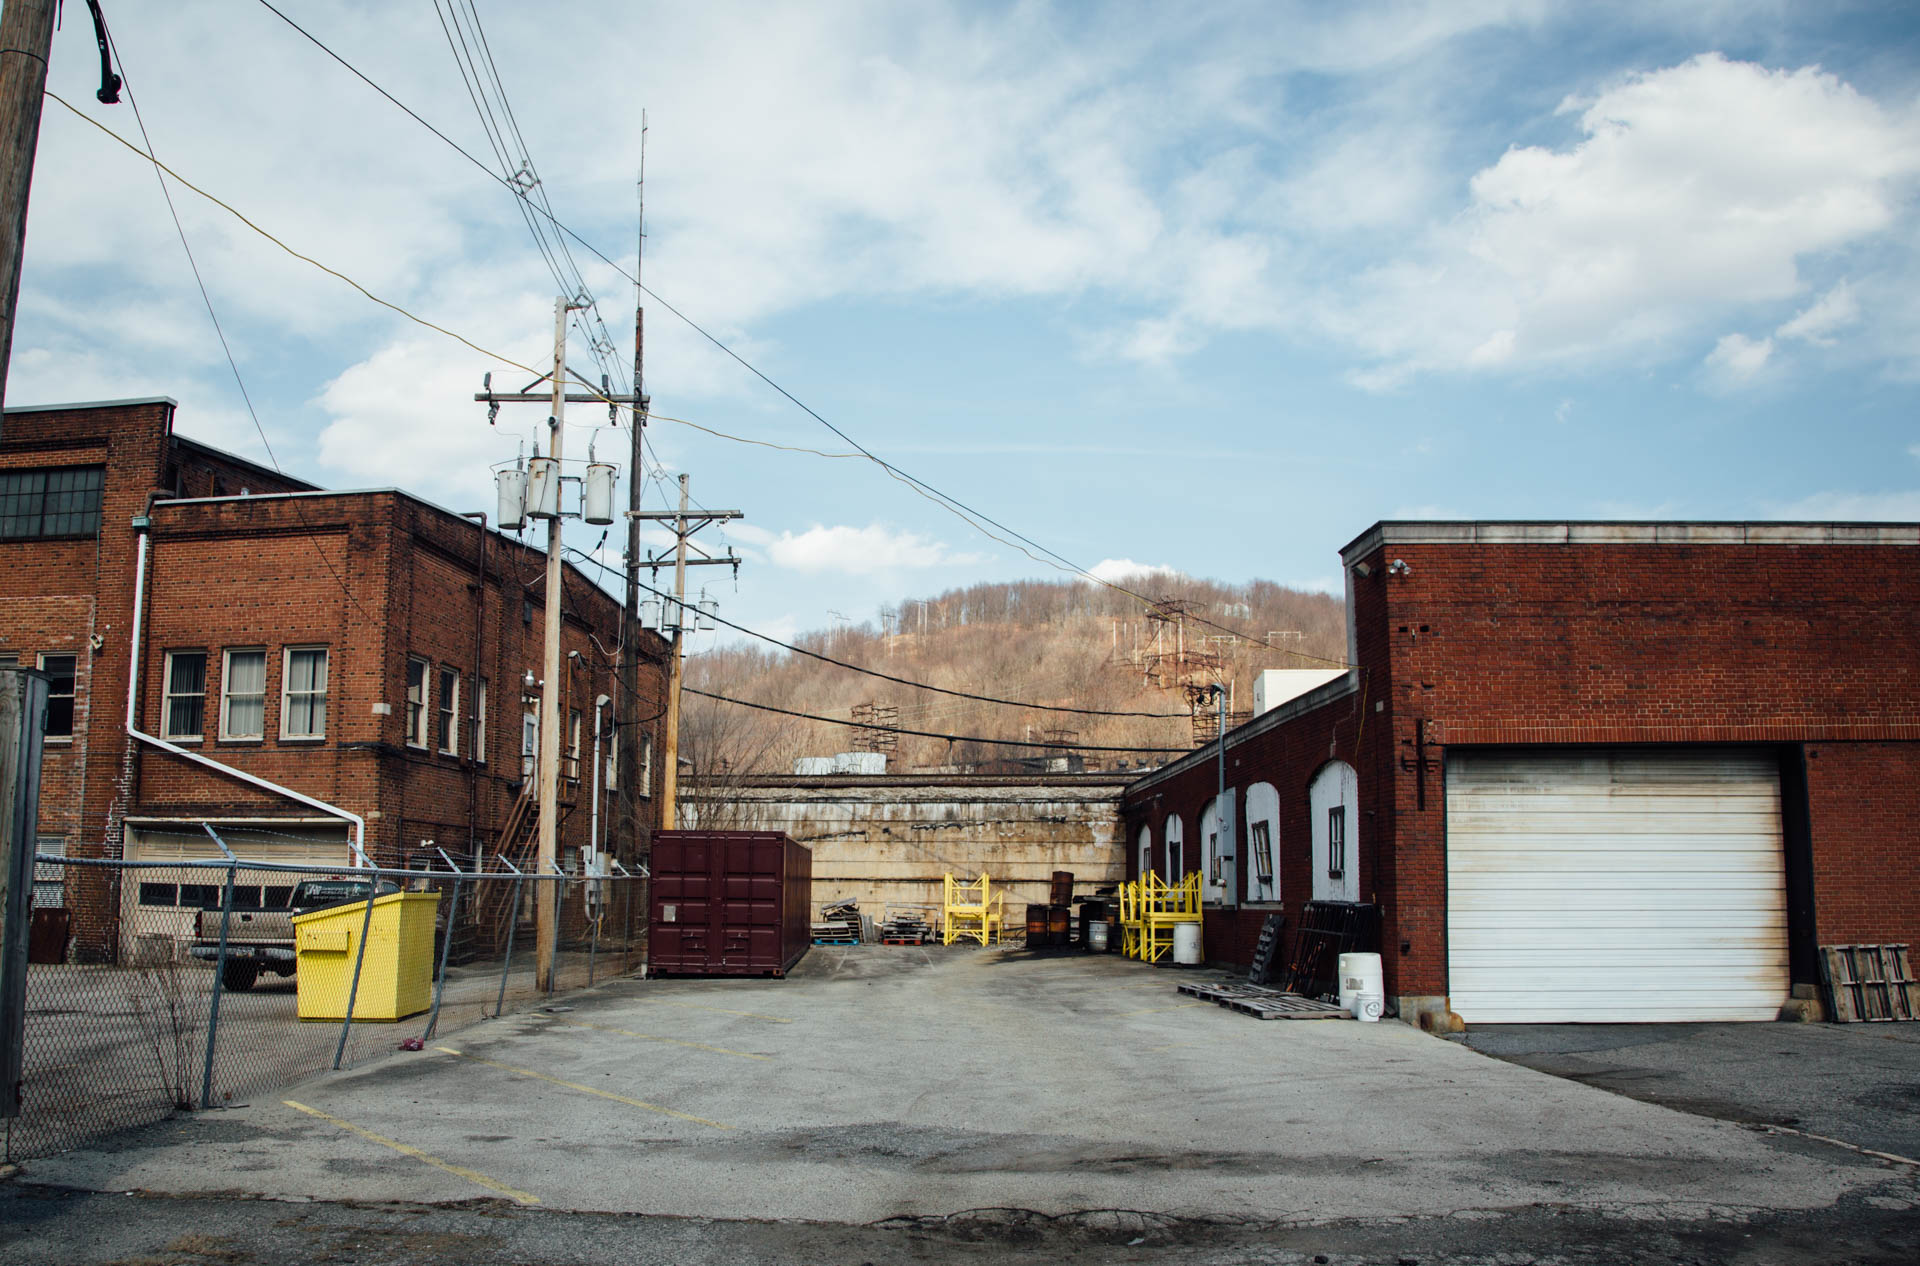 ns-prr-main-line-behind-industrial-buildings-johnstown-pa-3473untitled